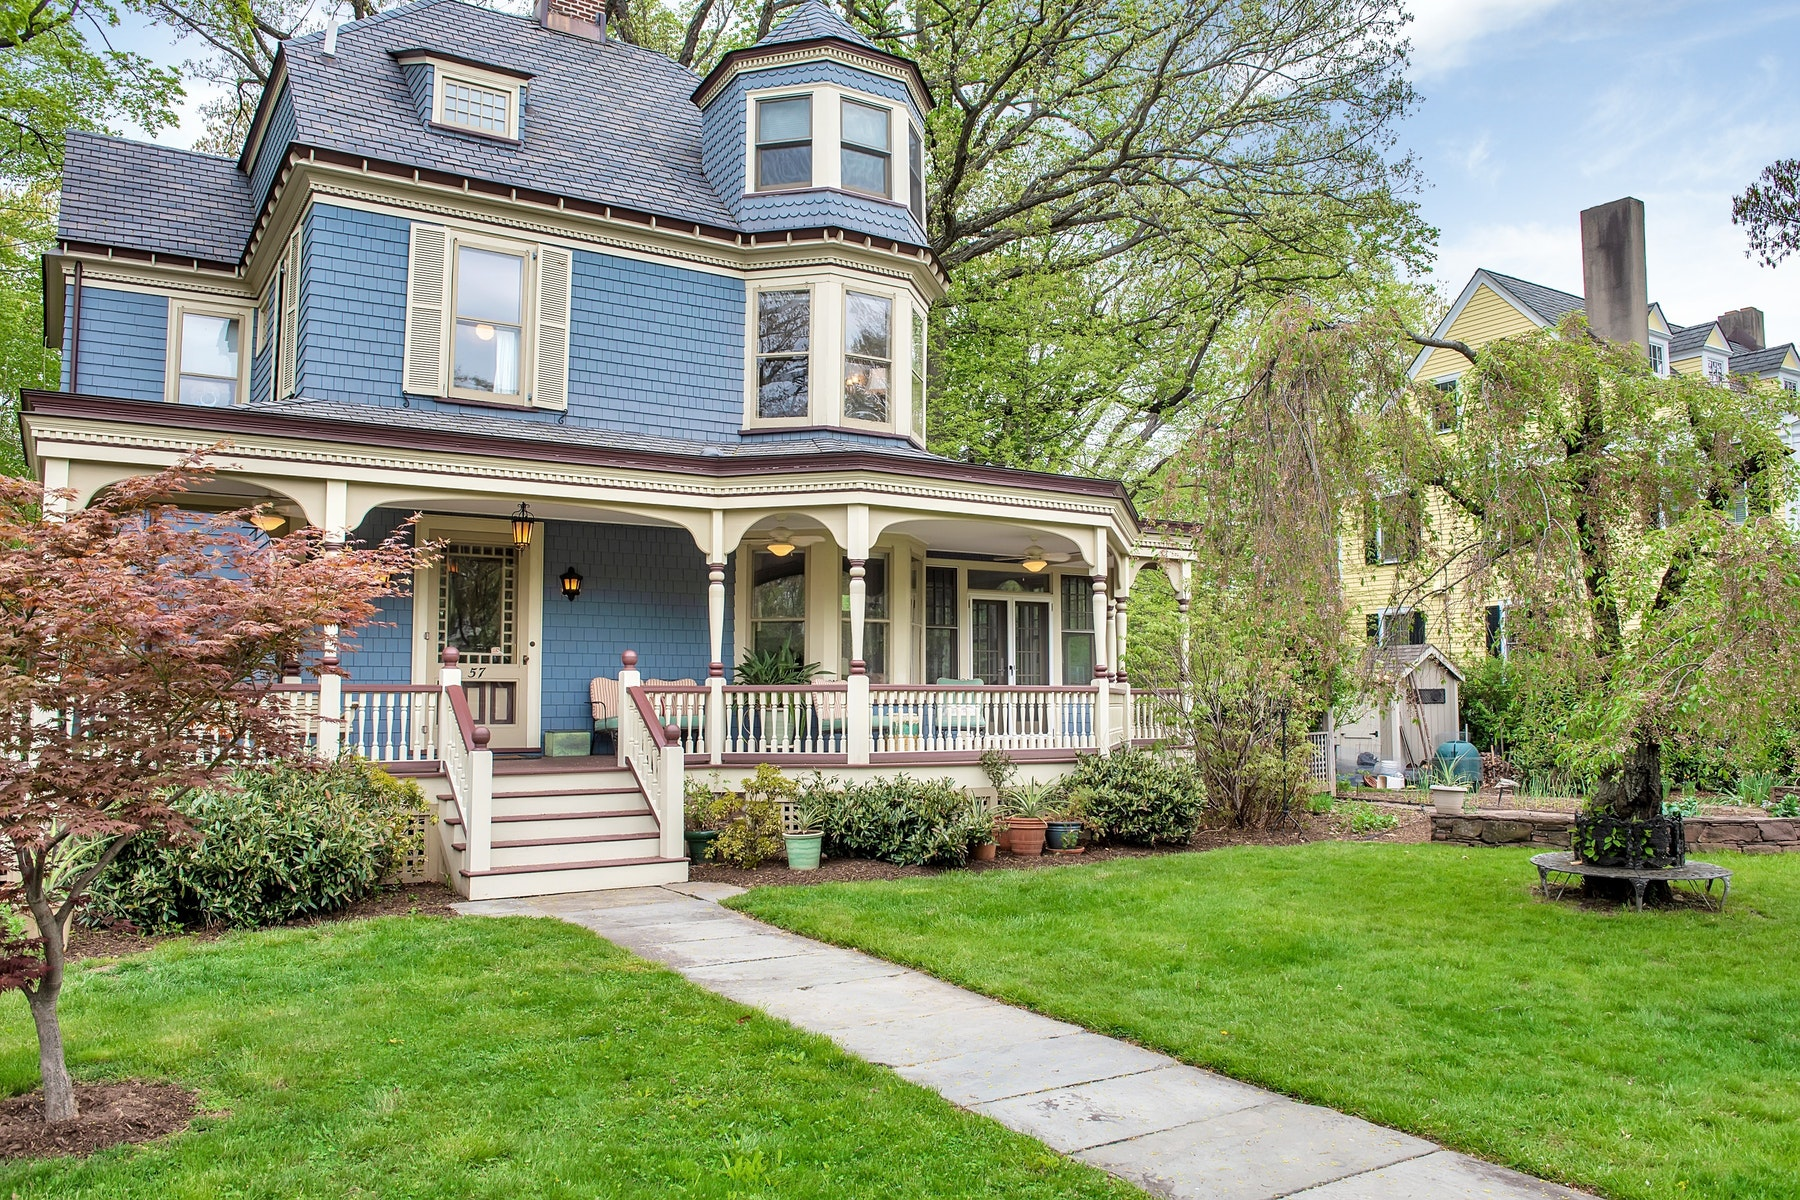 Single Family Home for Sale at Lovely Warm Victorian 57 Woodland Avenue, Glen Ridge, New Jersey 07028 United States